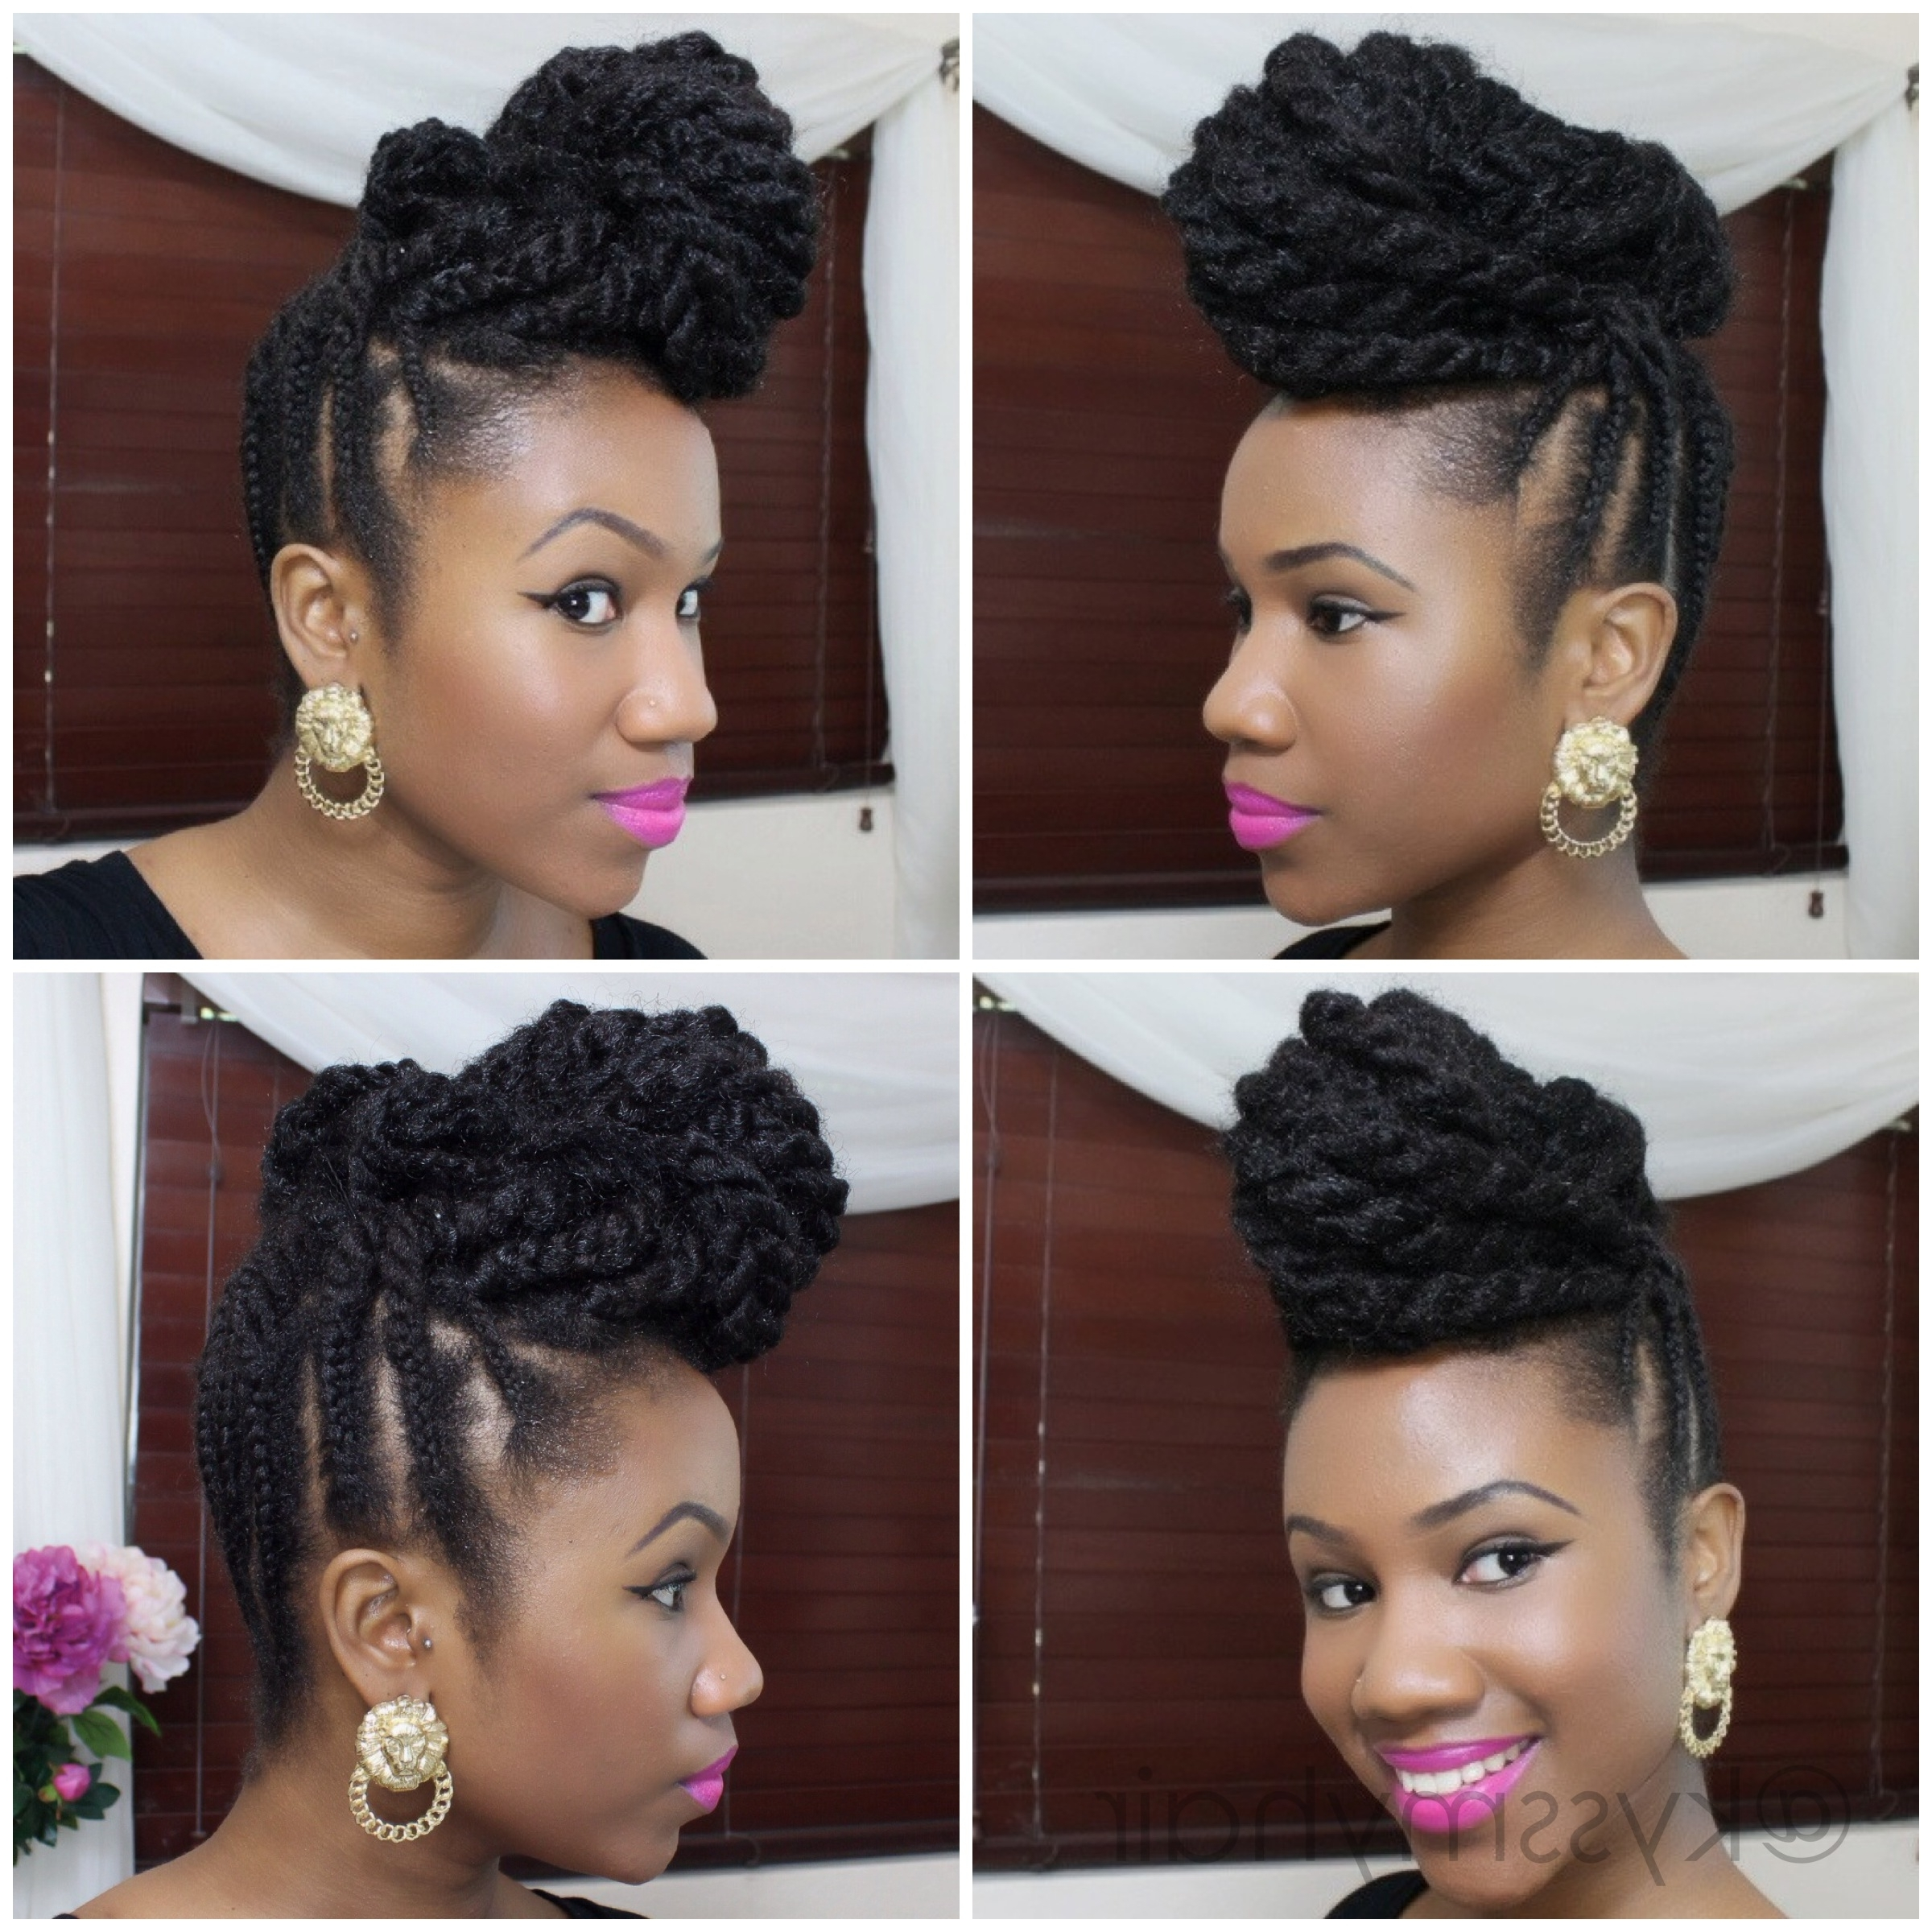 Braided Updo On Natural Hair Using Marley Hair | Kyss My Hair | Kyss Regarding Natural Black Hair Updo Hairstyles (View 3 of 15)